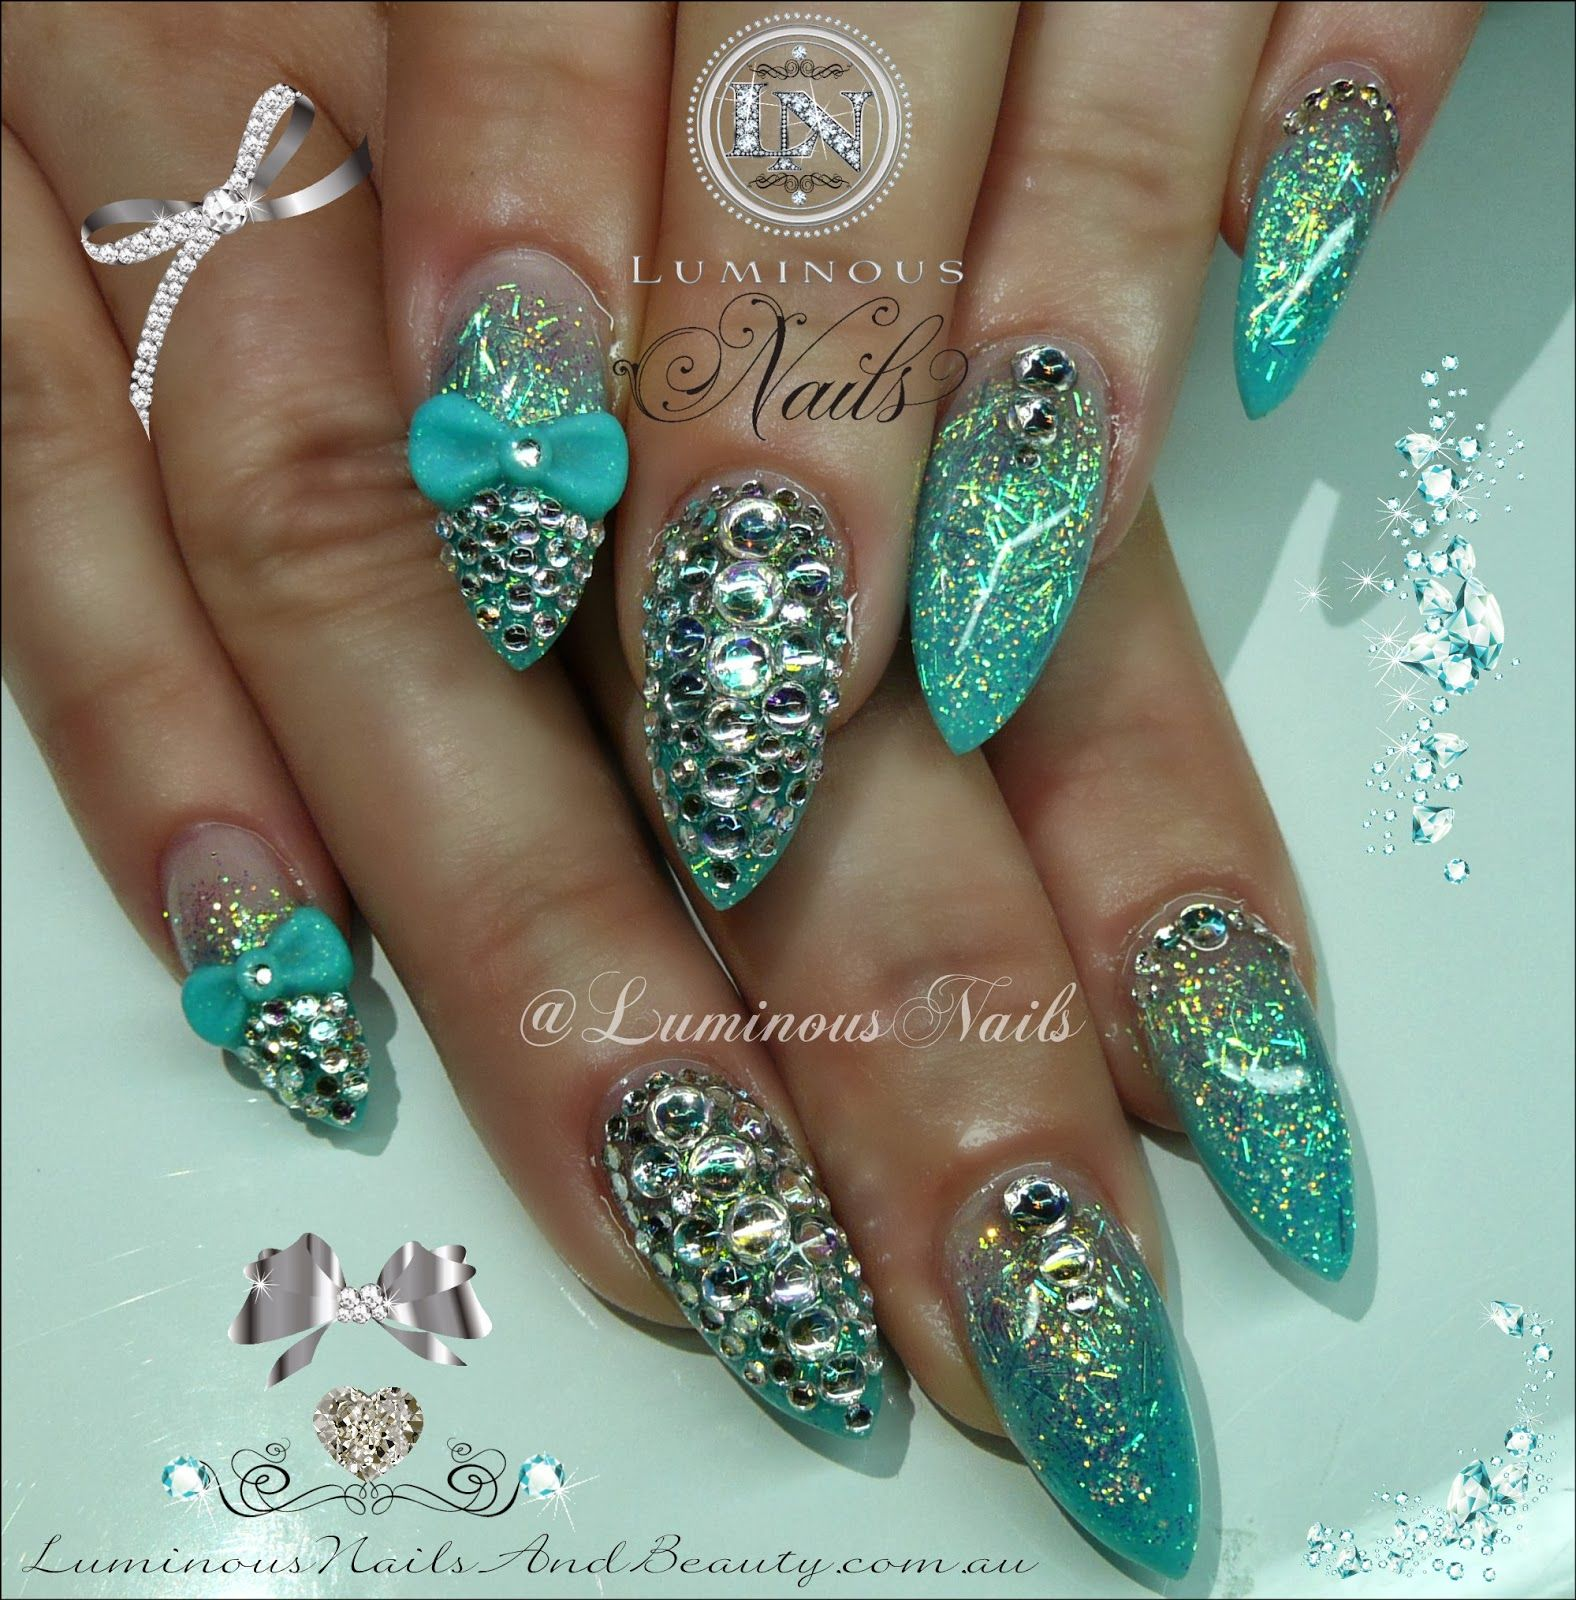 Turquoise Stiletto Nail Art: Luminous Nails: Shimmery Turquoise Nails With Lots Of